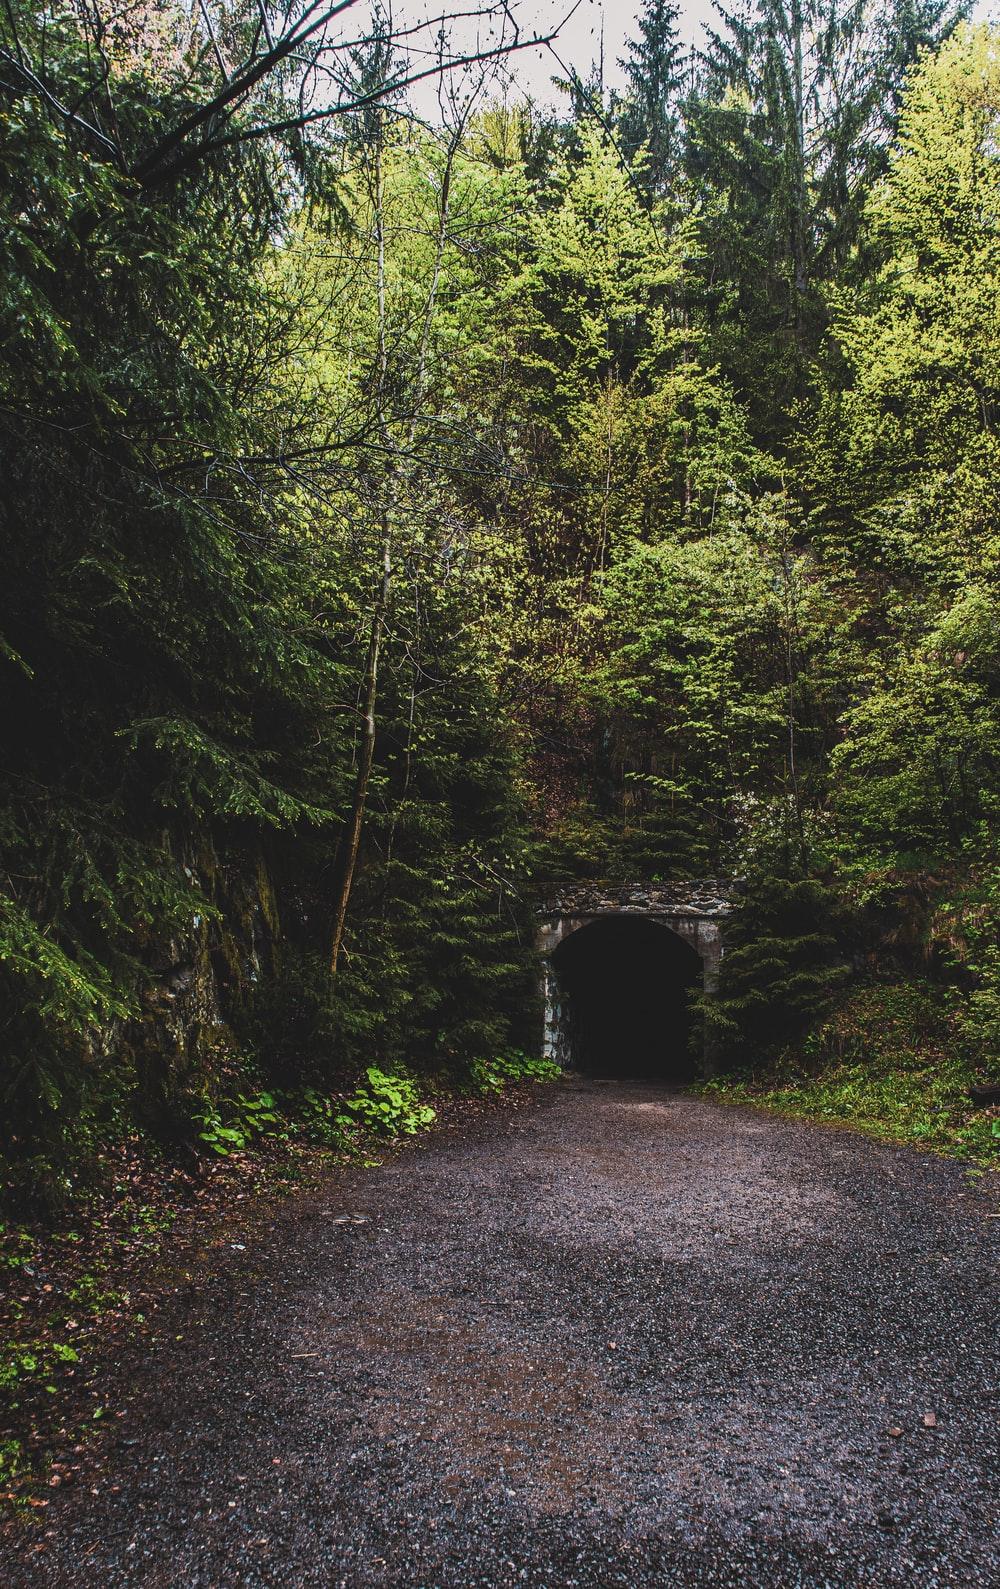 gray road going on tunnel surrounded with tall and green trees during daytime